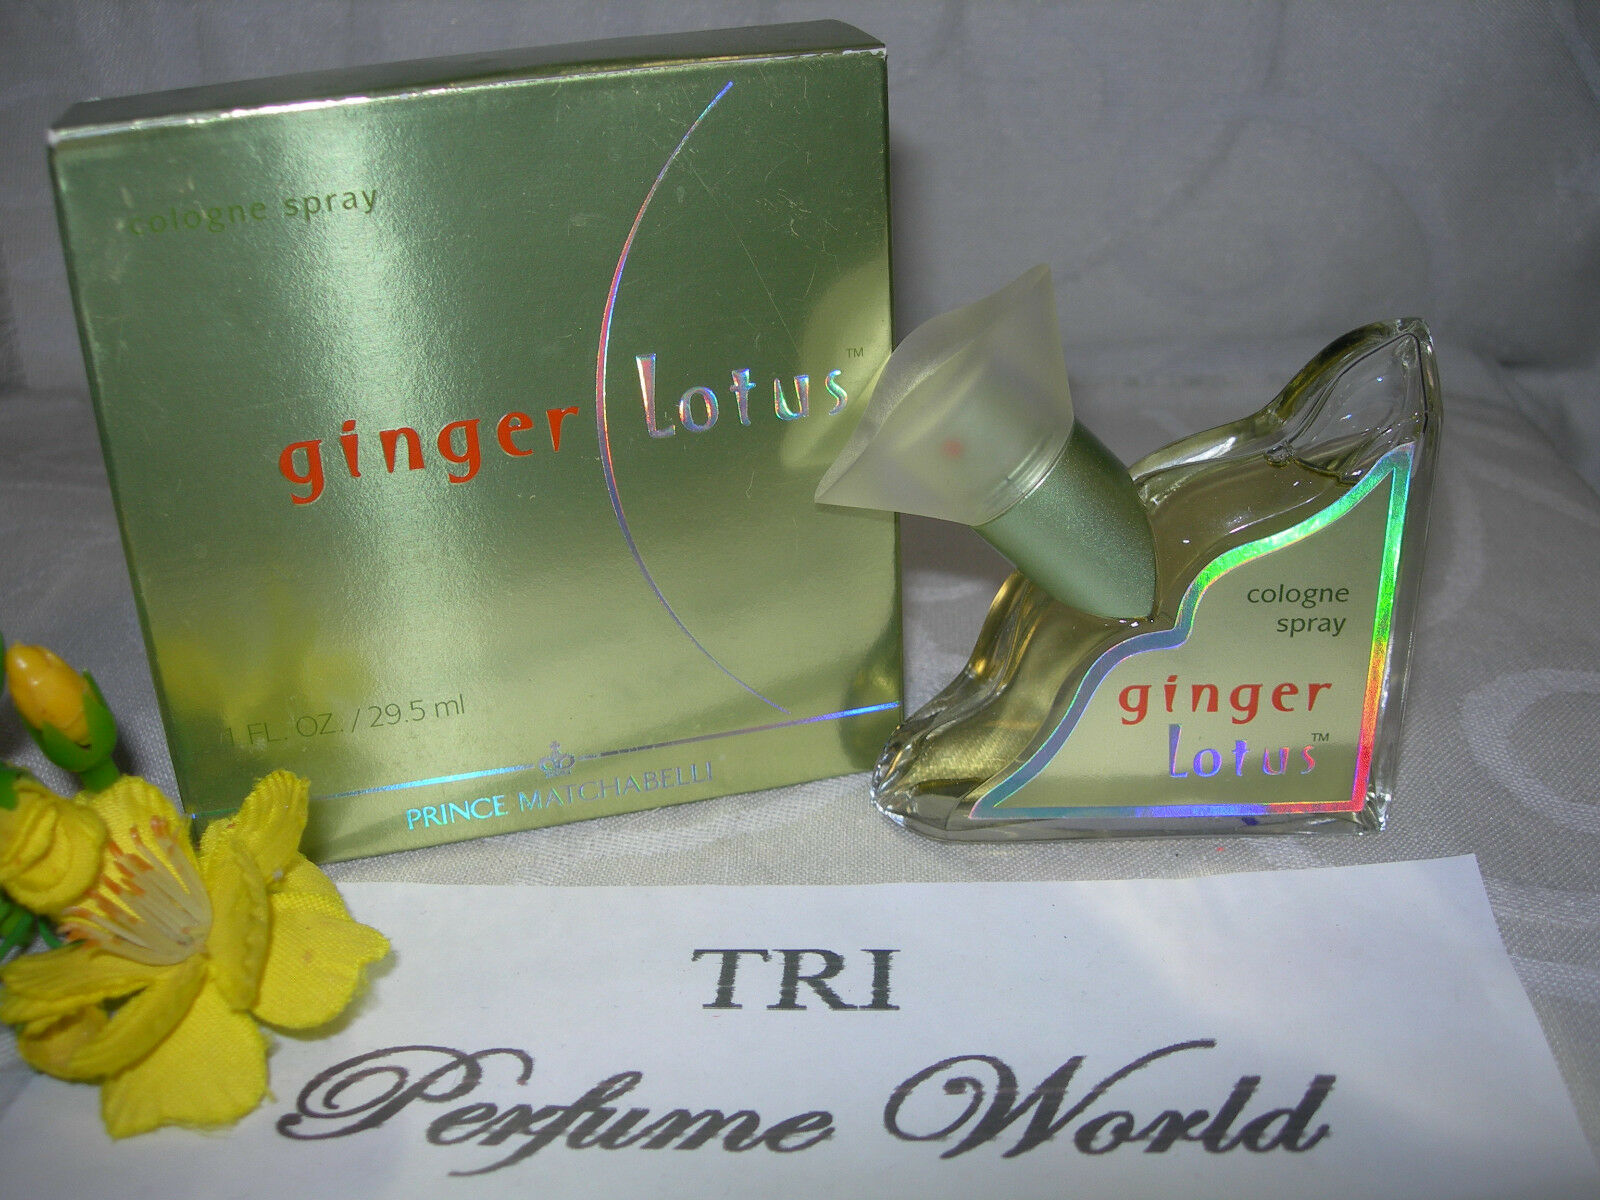 Ginger lotus cologne spray 1 oz prince matchabelli vintage full no picture 1 of 2 izmirmasajfo